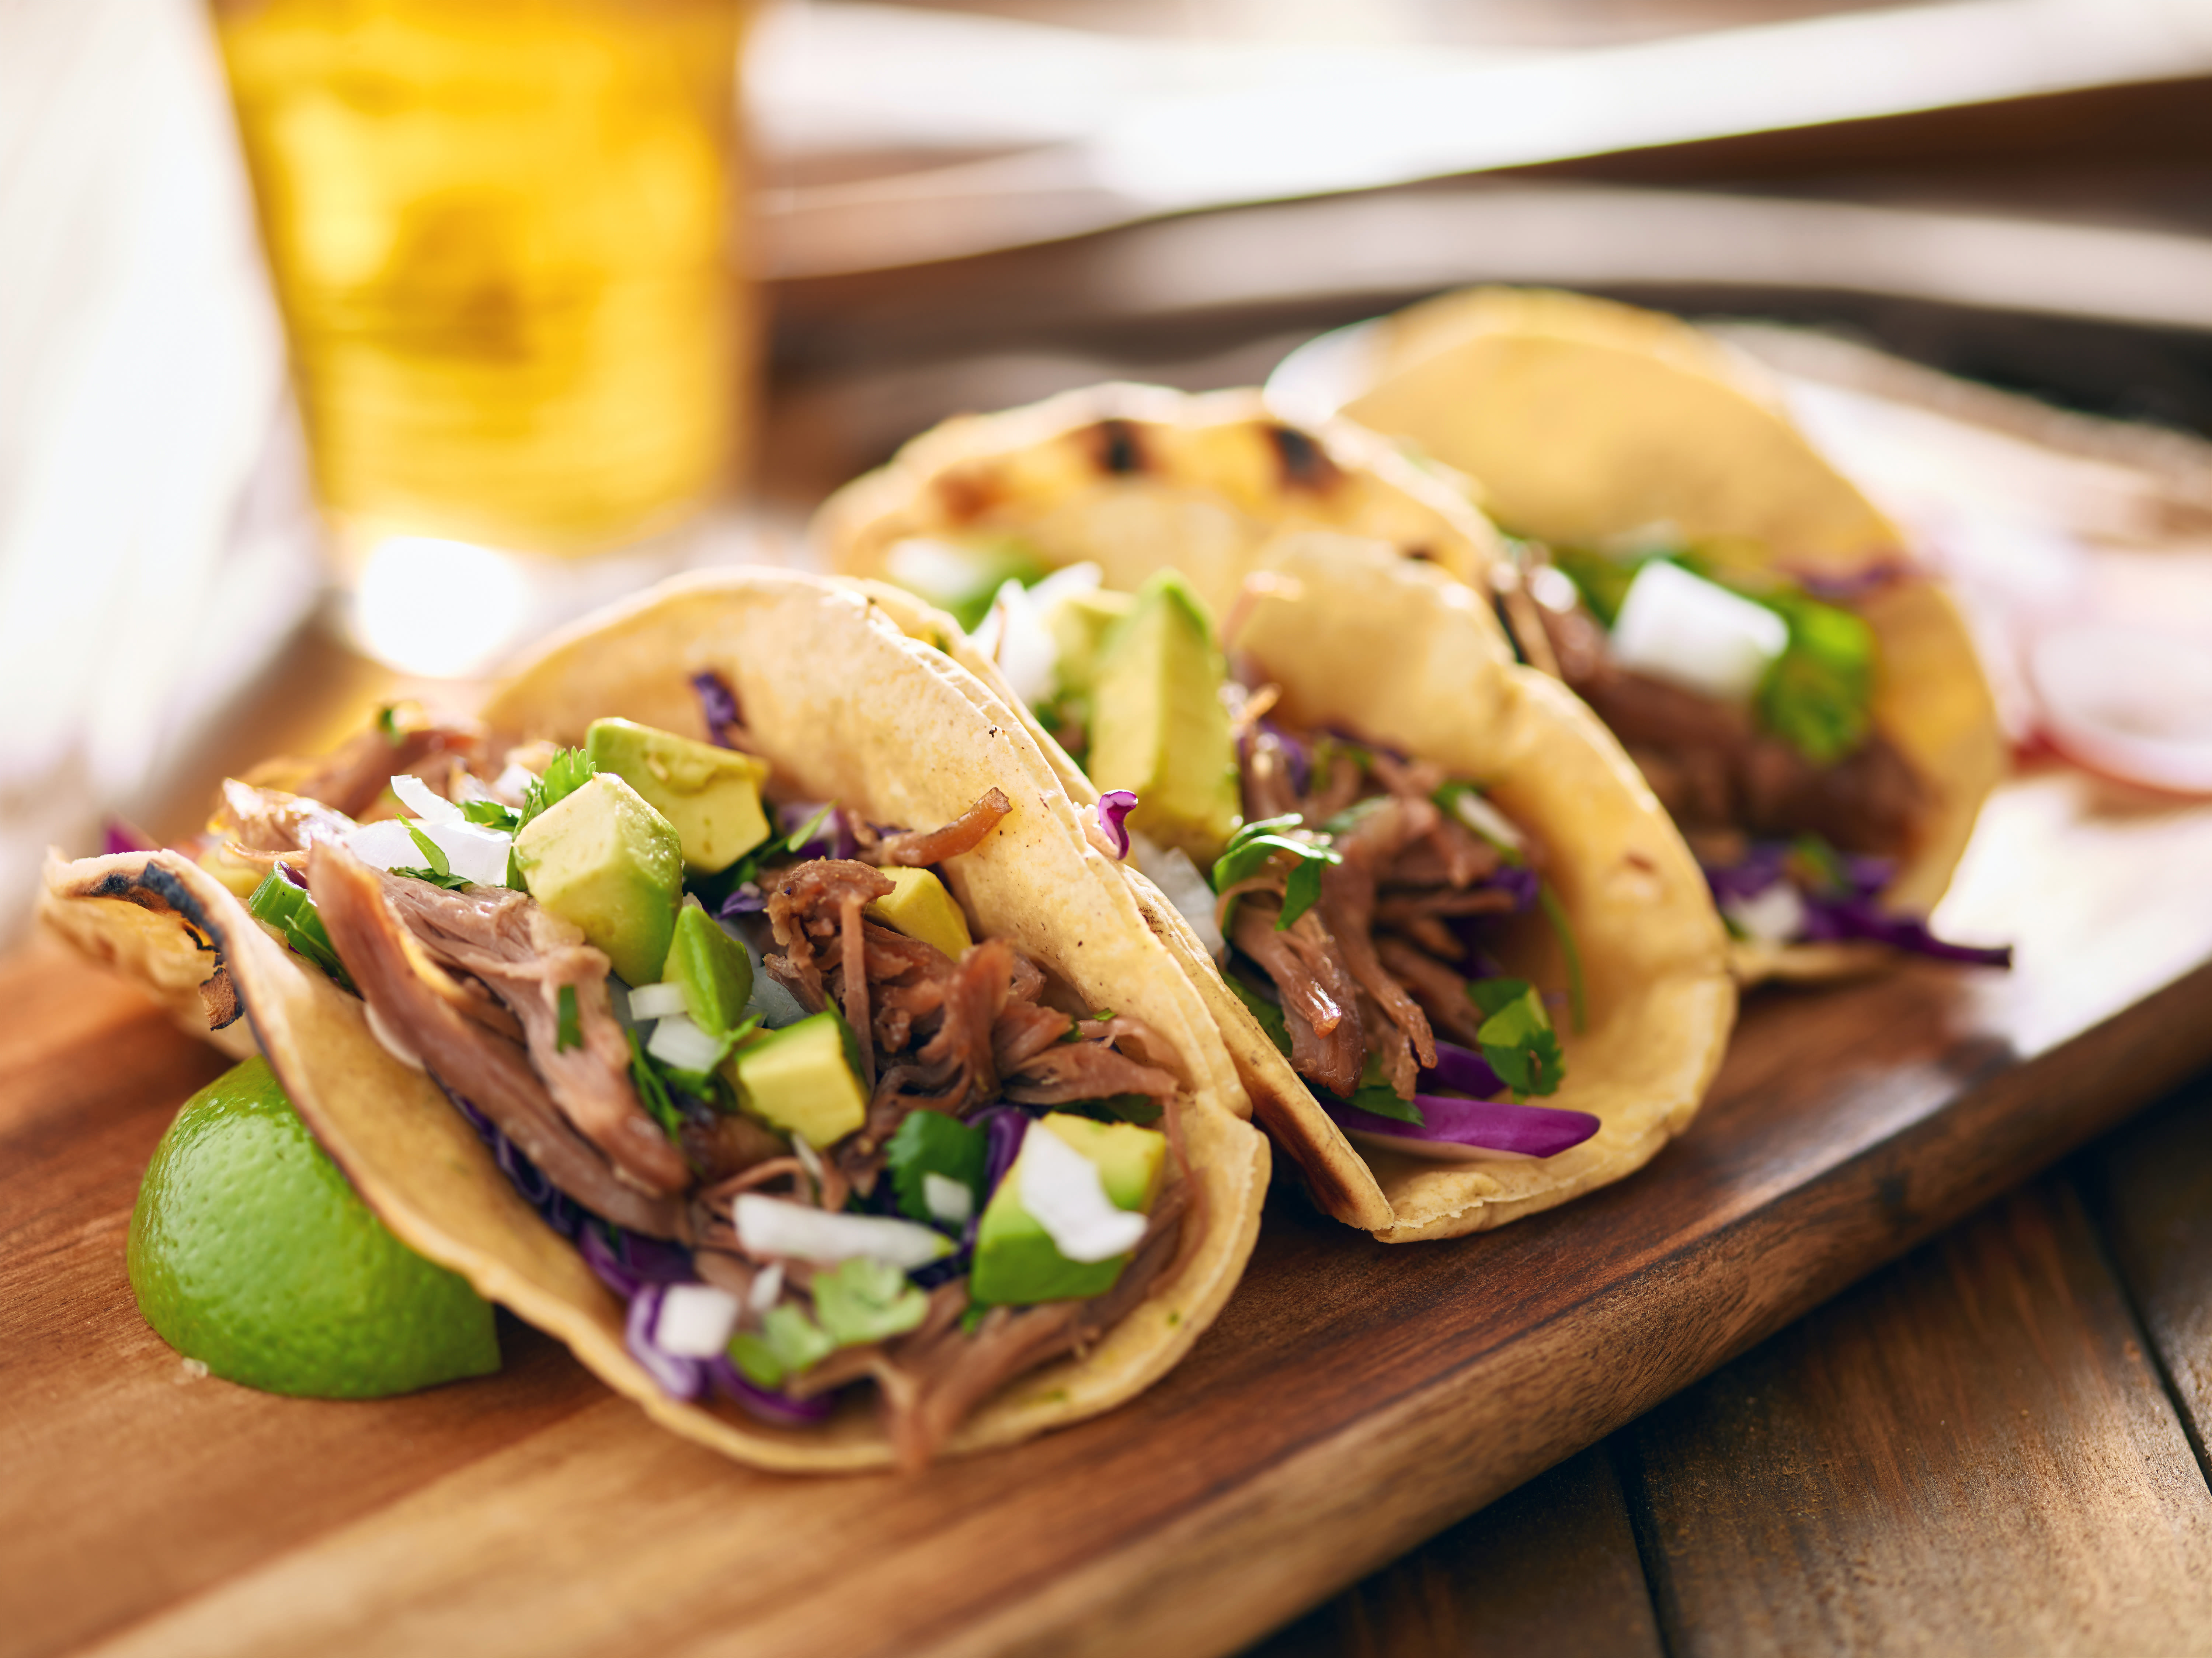 Enjoy a delicious tacos at The Park at Surprise senior living facility